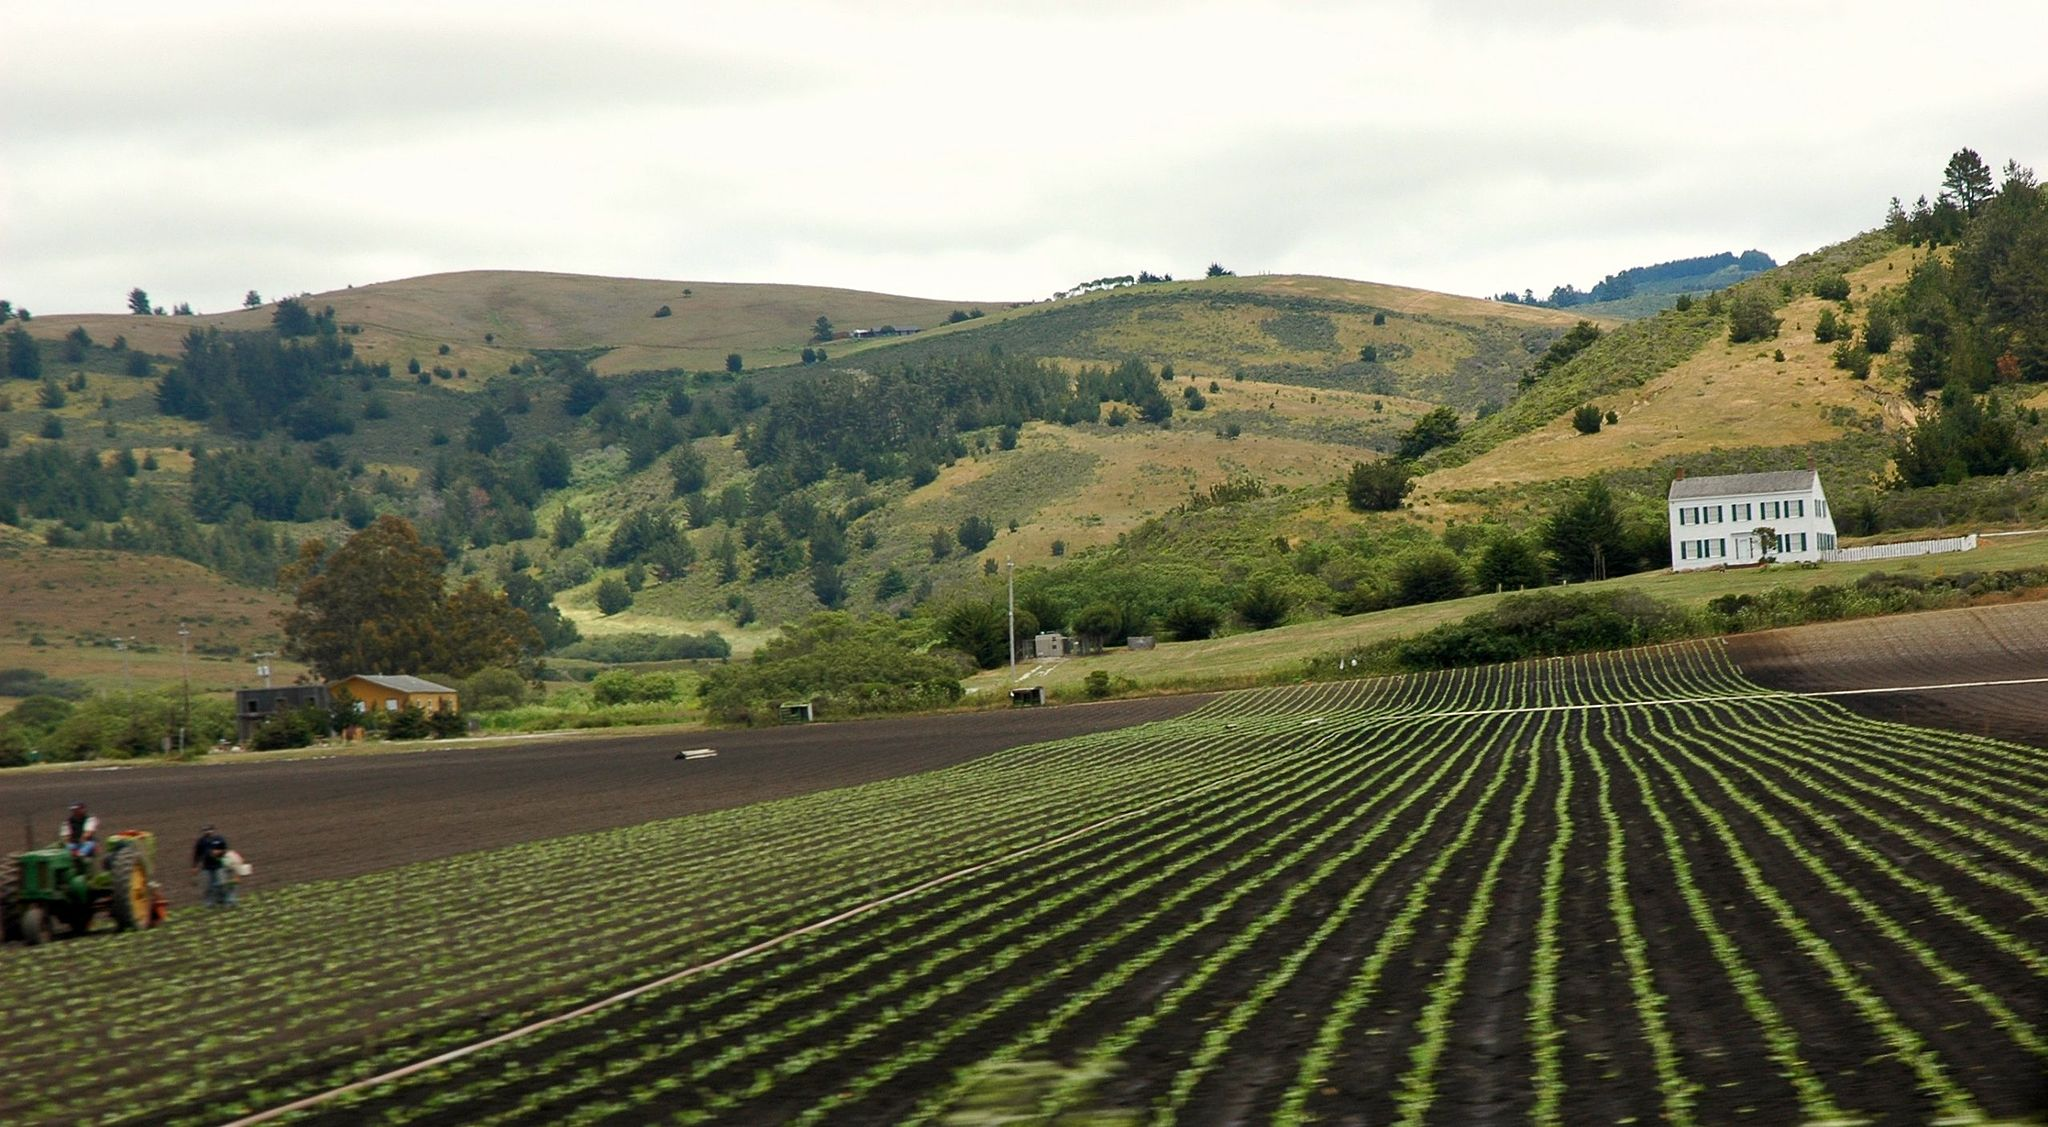 Long fields with farms in California, Credit: Wikimedia Commons